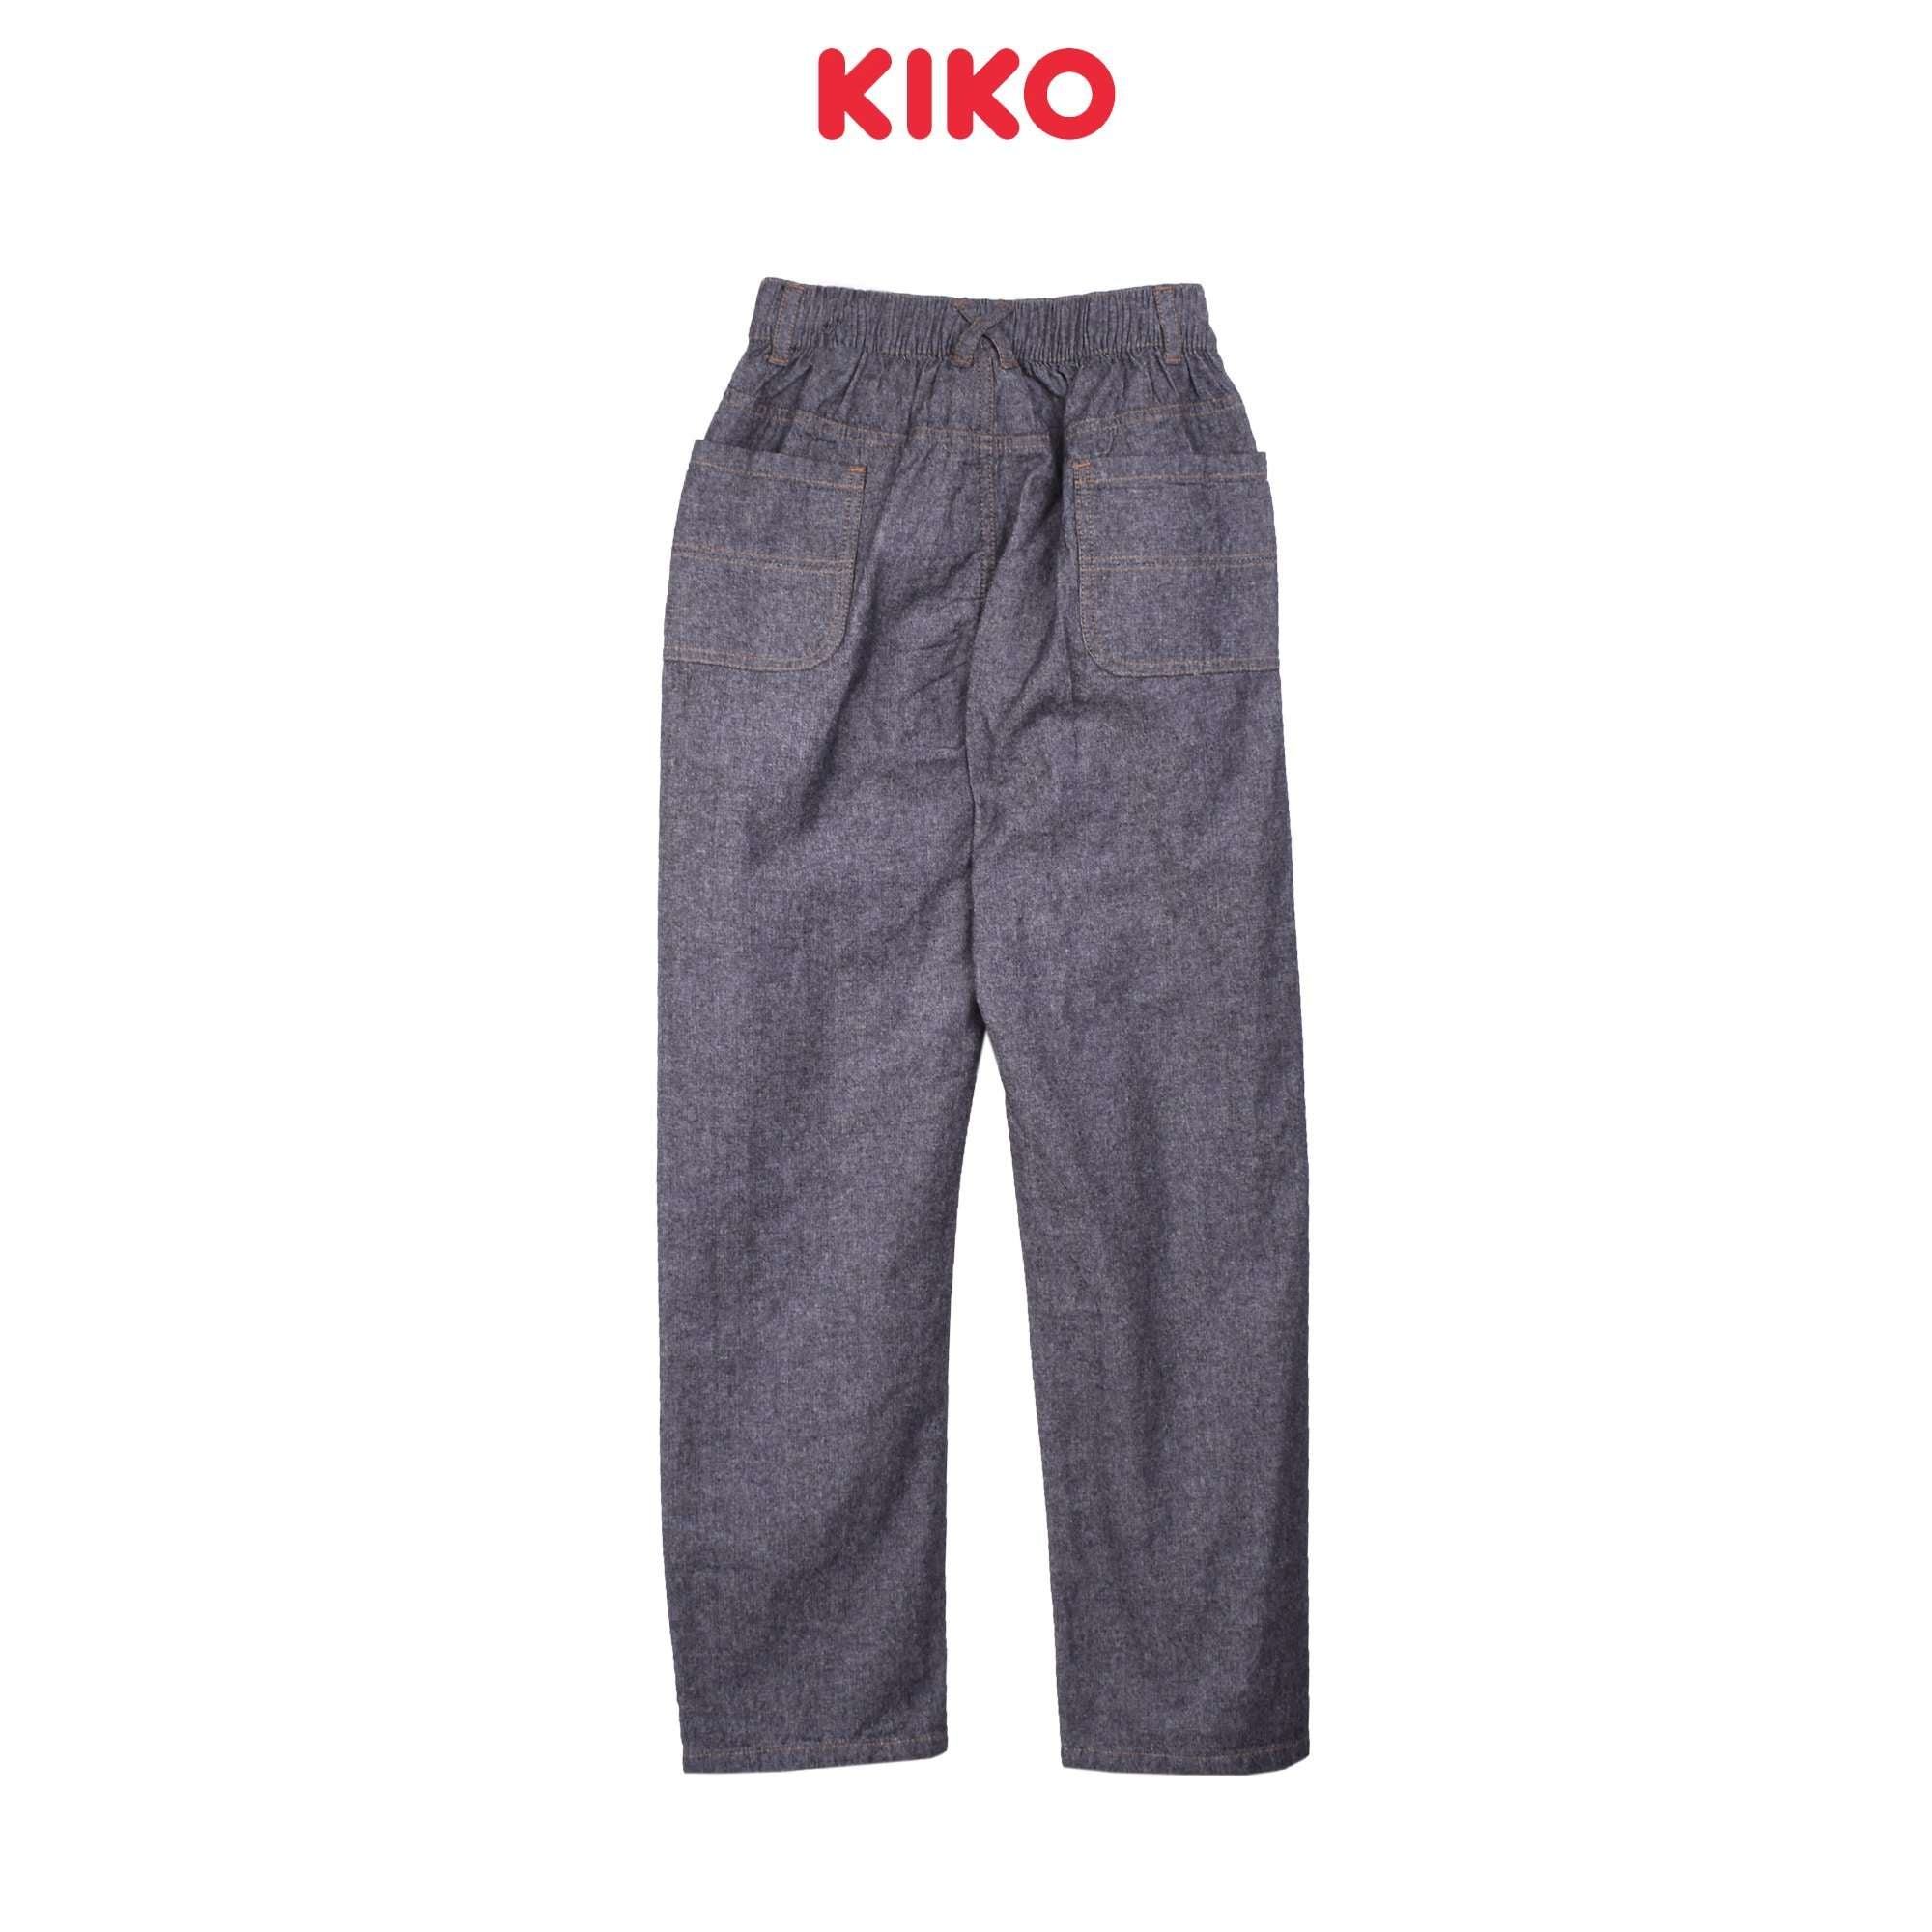 KIKO Boy Jeans Regular Fit K922001-2149-G9 : Buy KIKO online at CMG.MY